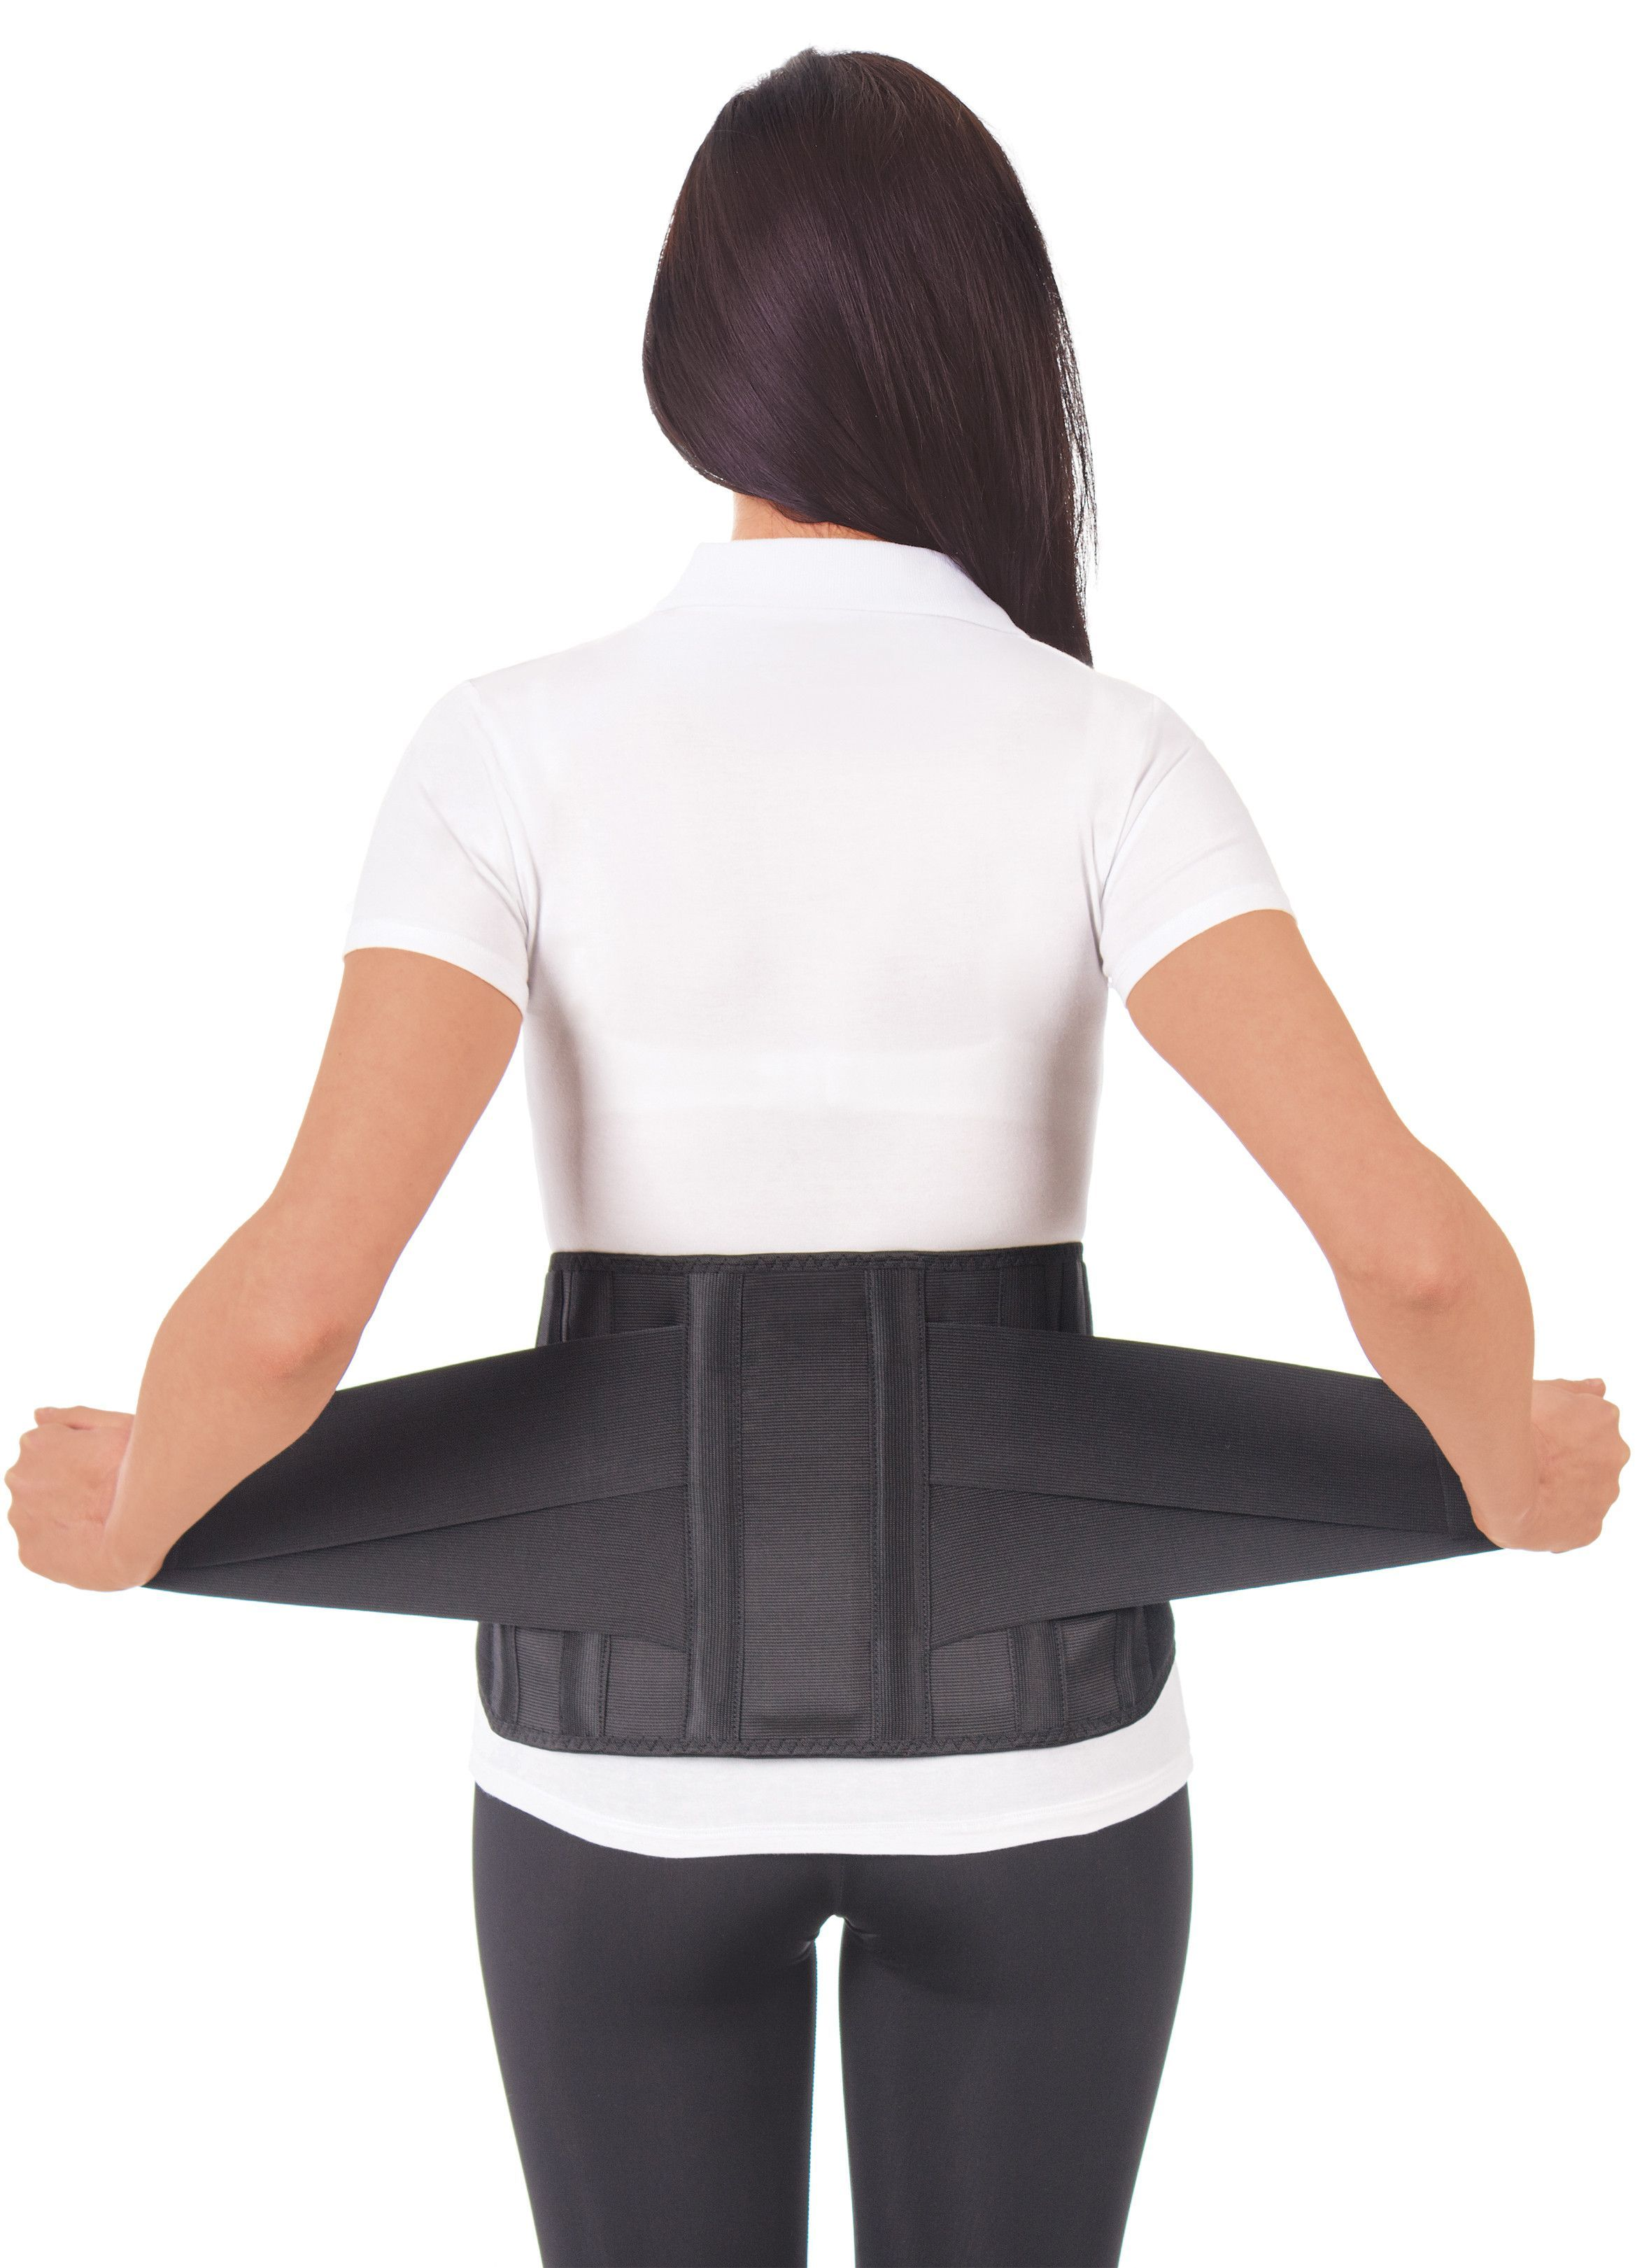 53128ce7e38 Lumbar Lower Back Brace Support Belt   Pain Relief and Comfort Posture -  Black